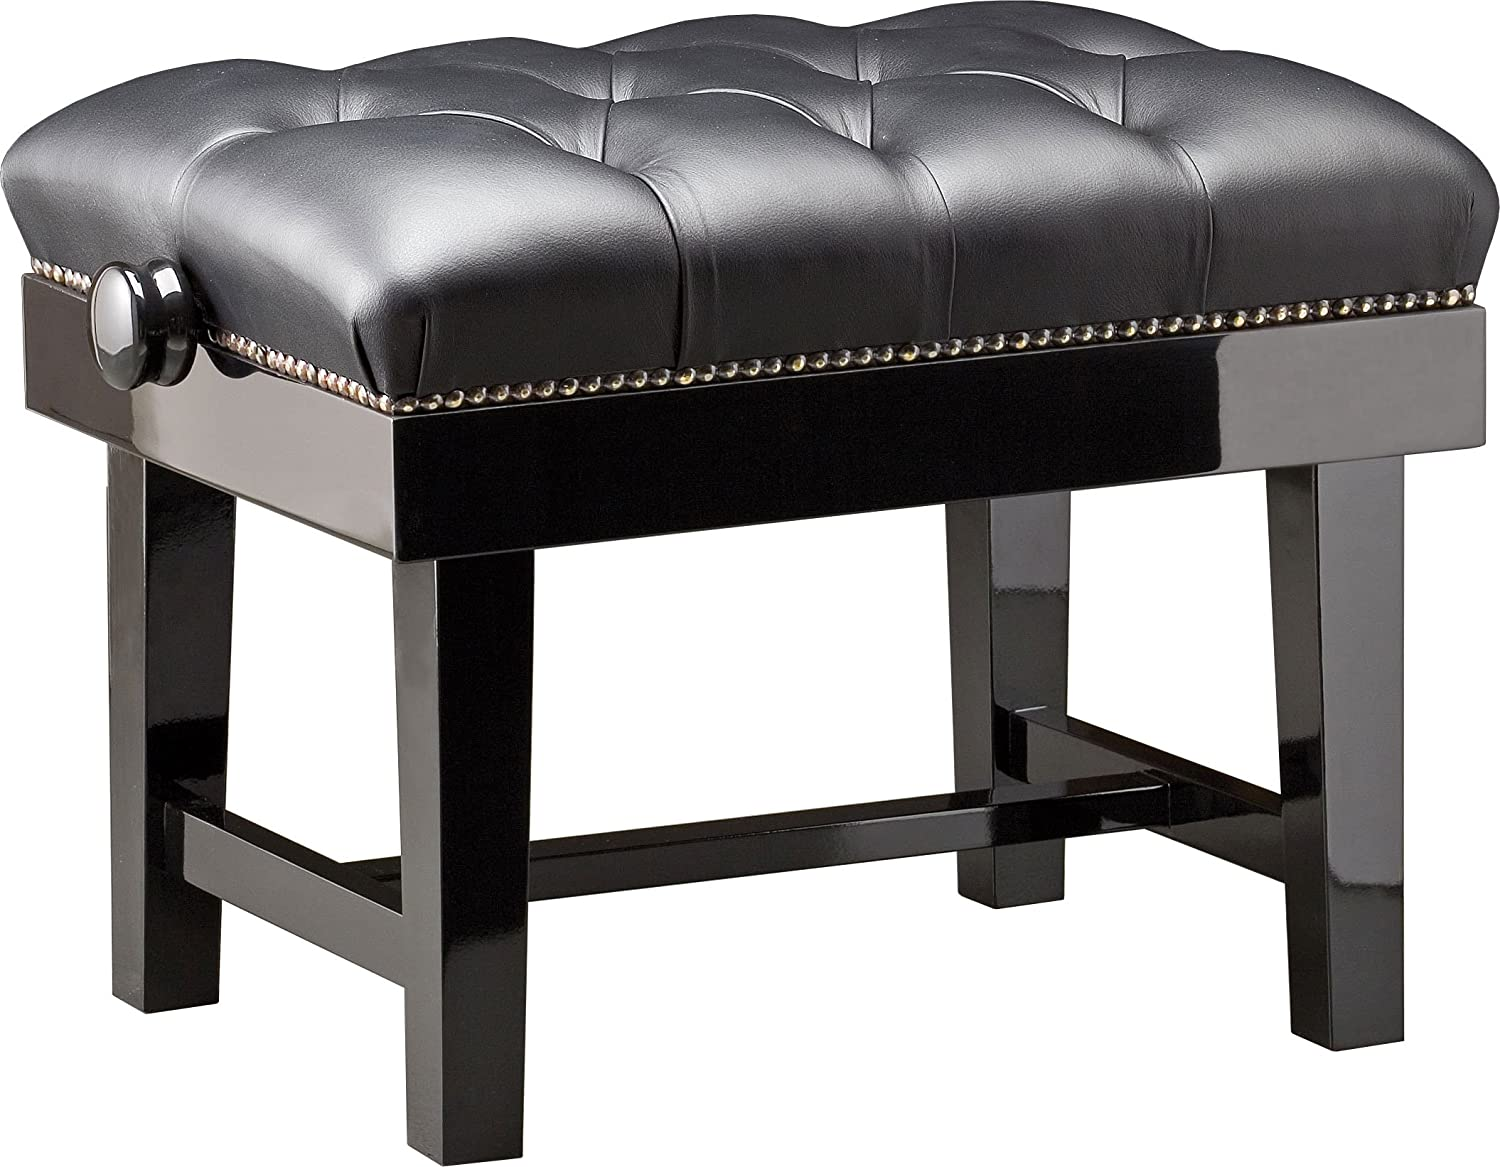 CGM 125QUEEN Premium Quality Height Adjustable Concert Piano Stool In Black  Gloss U0026 Black Buttoned Leather Upholstery: Amazon.co.uk: Musical Instruments